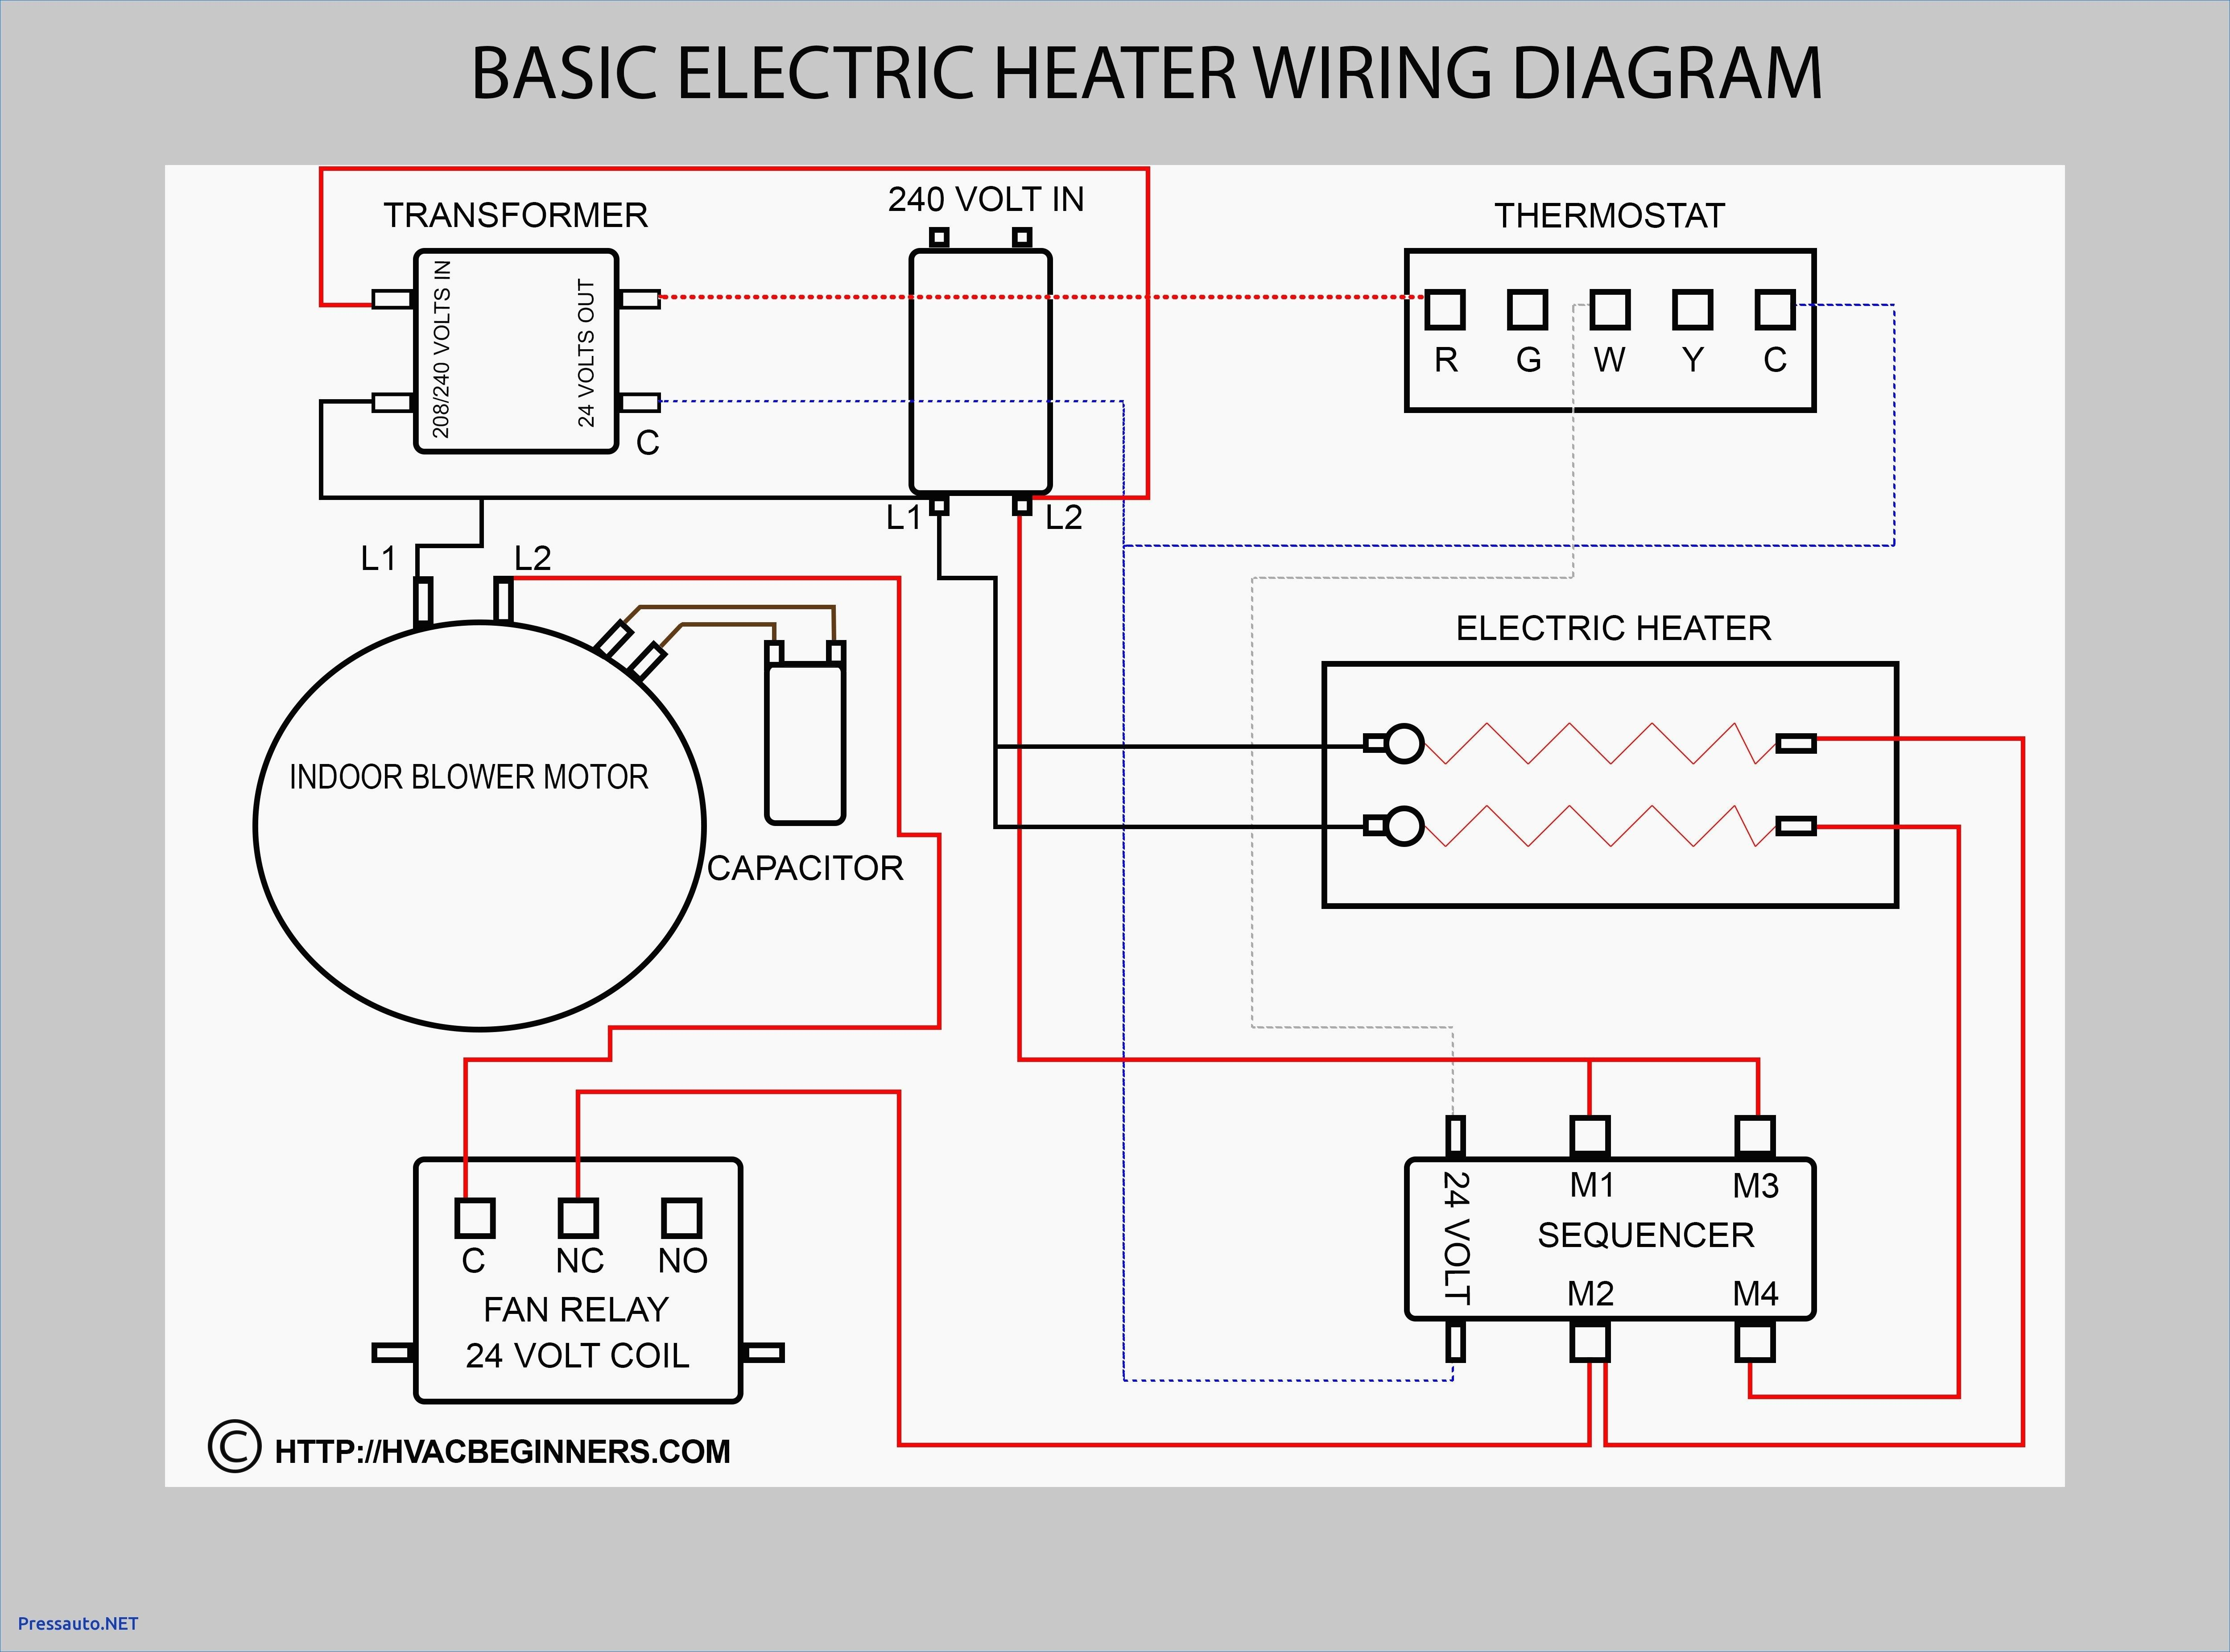 hight resolution of electric furnace wiring diagram 240 volt wiring diagrams value electric furnace wiring diagram 240 volt